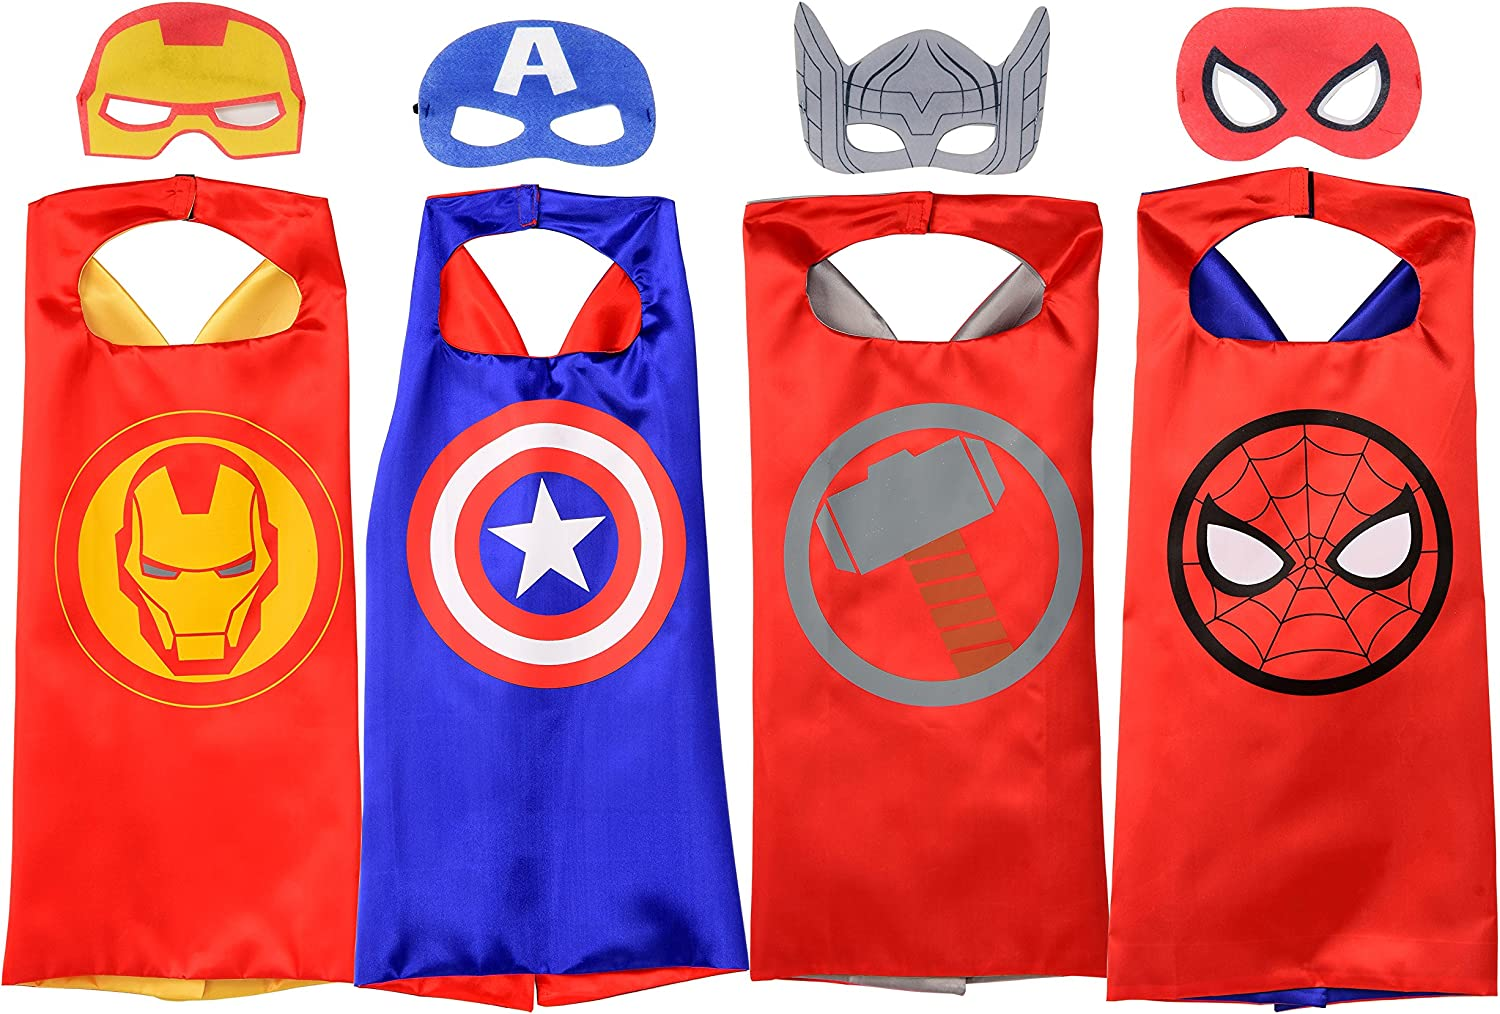 Rubie's Marvel Super Hero Cape Set, Officially Licensed 4 Capes and 4 Masks Assortment (Amazon Exclusive)